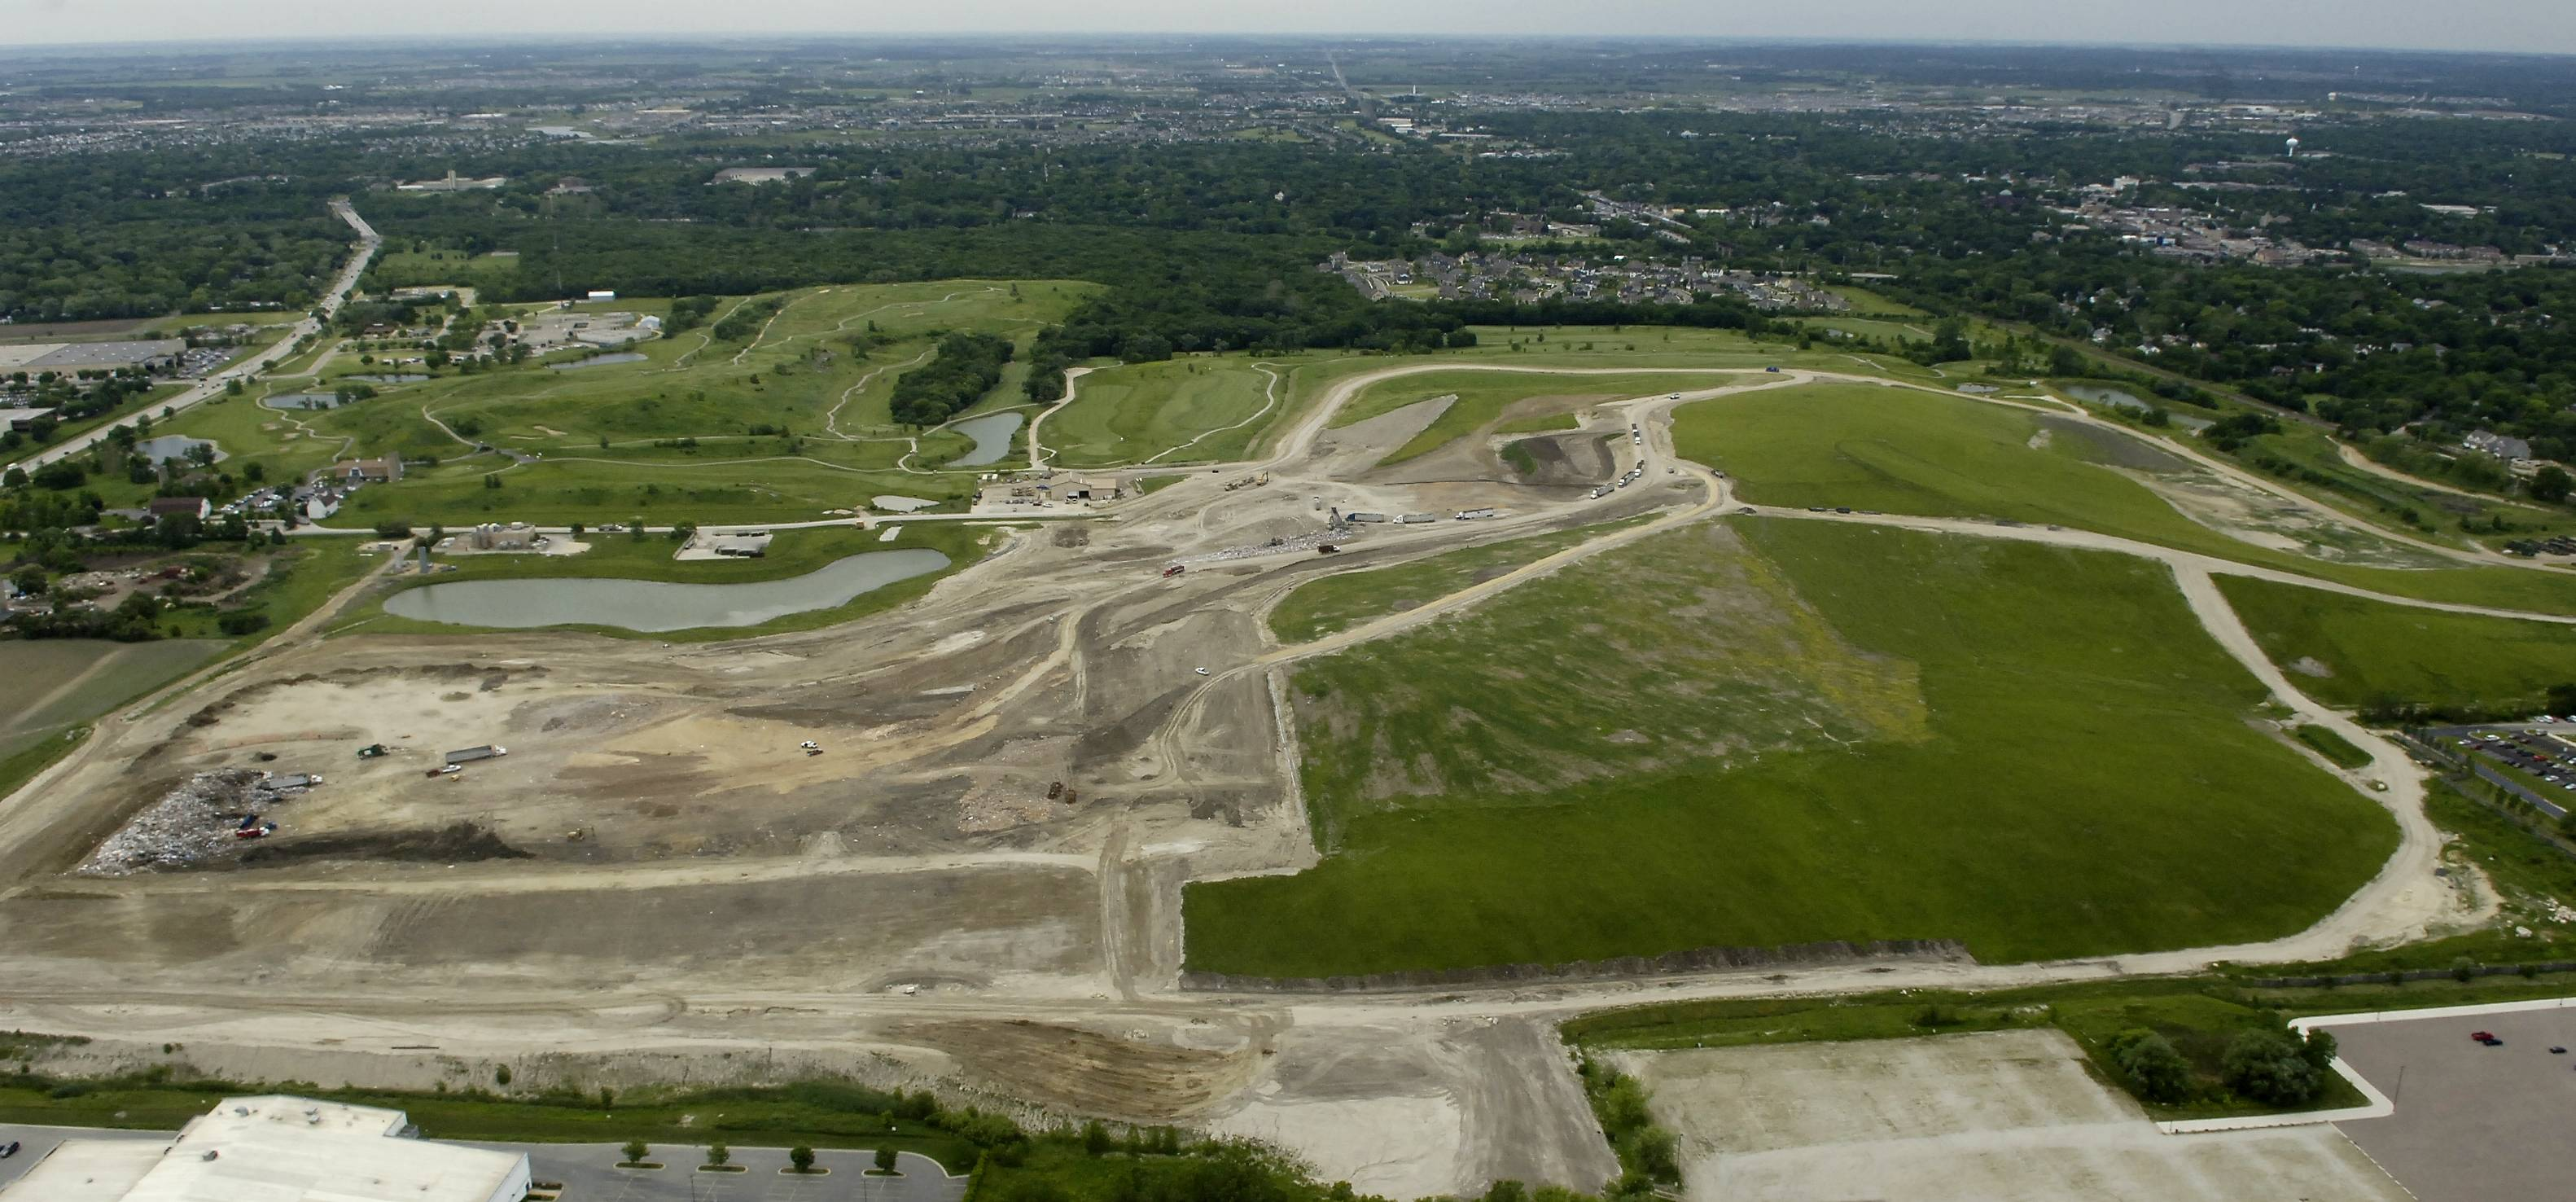 The closed Settler's Hill landfill in Geneva could be home to a cross-country course that could benefit local high school and college teams.